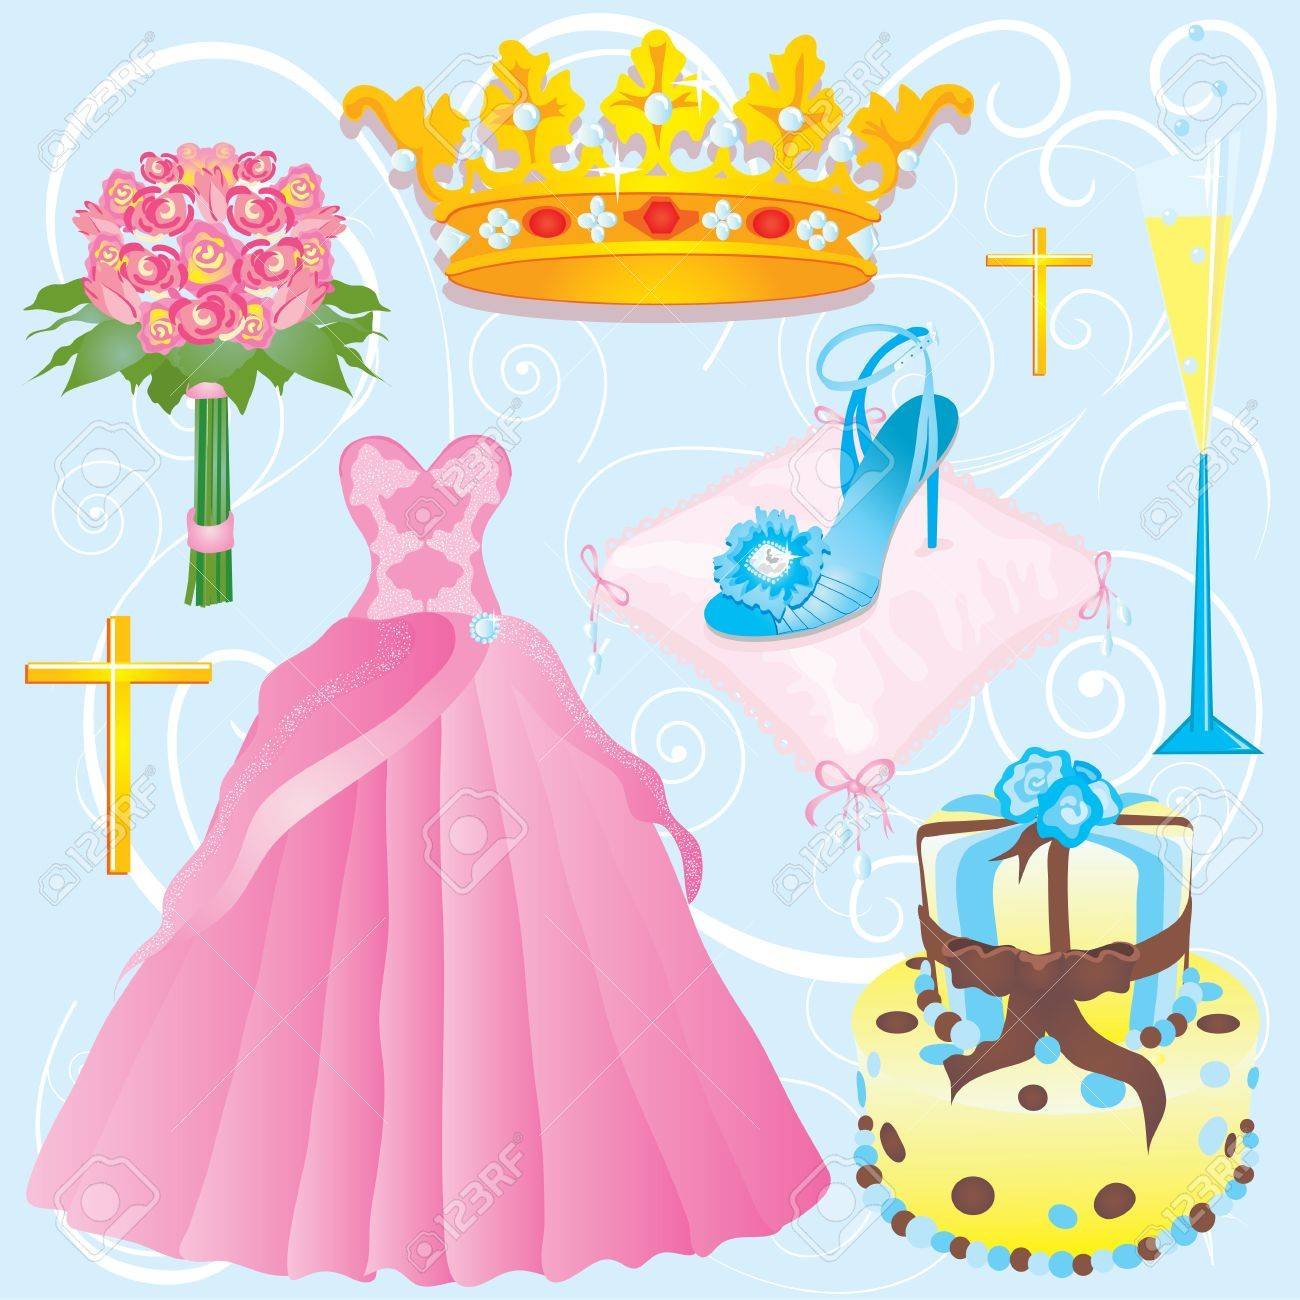 Quinceanera Clip Art Or Invitation For Your Party Royalty Free ...